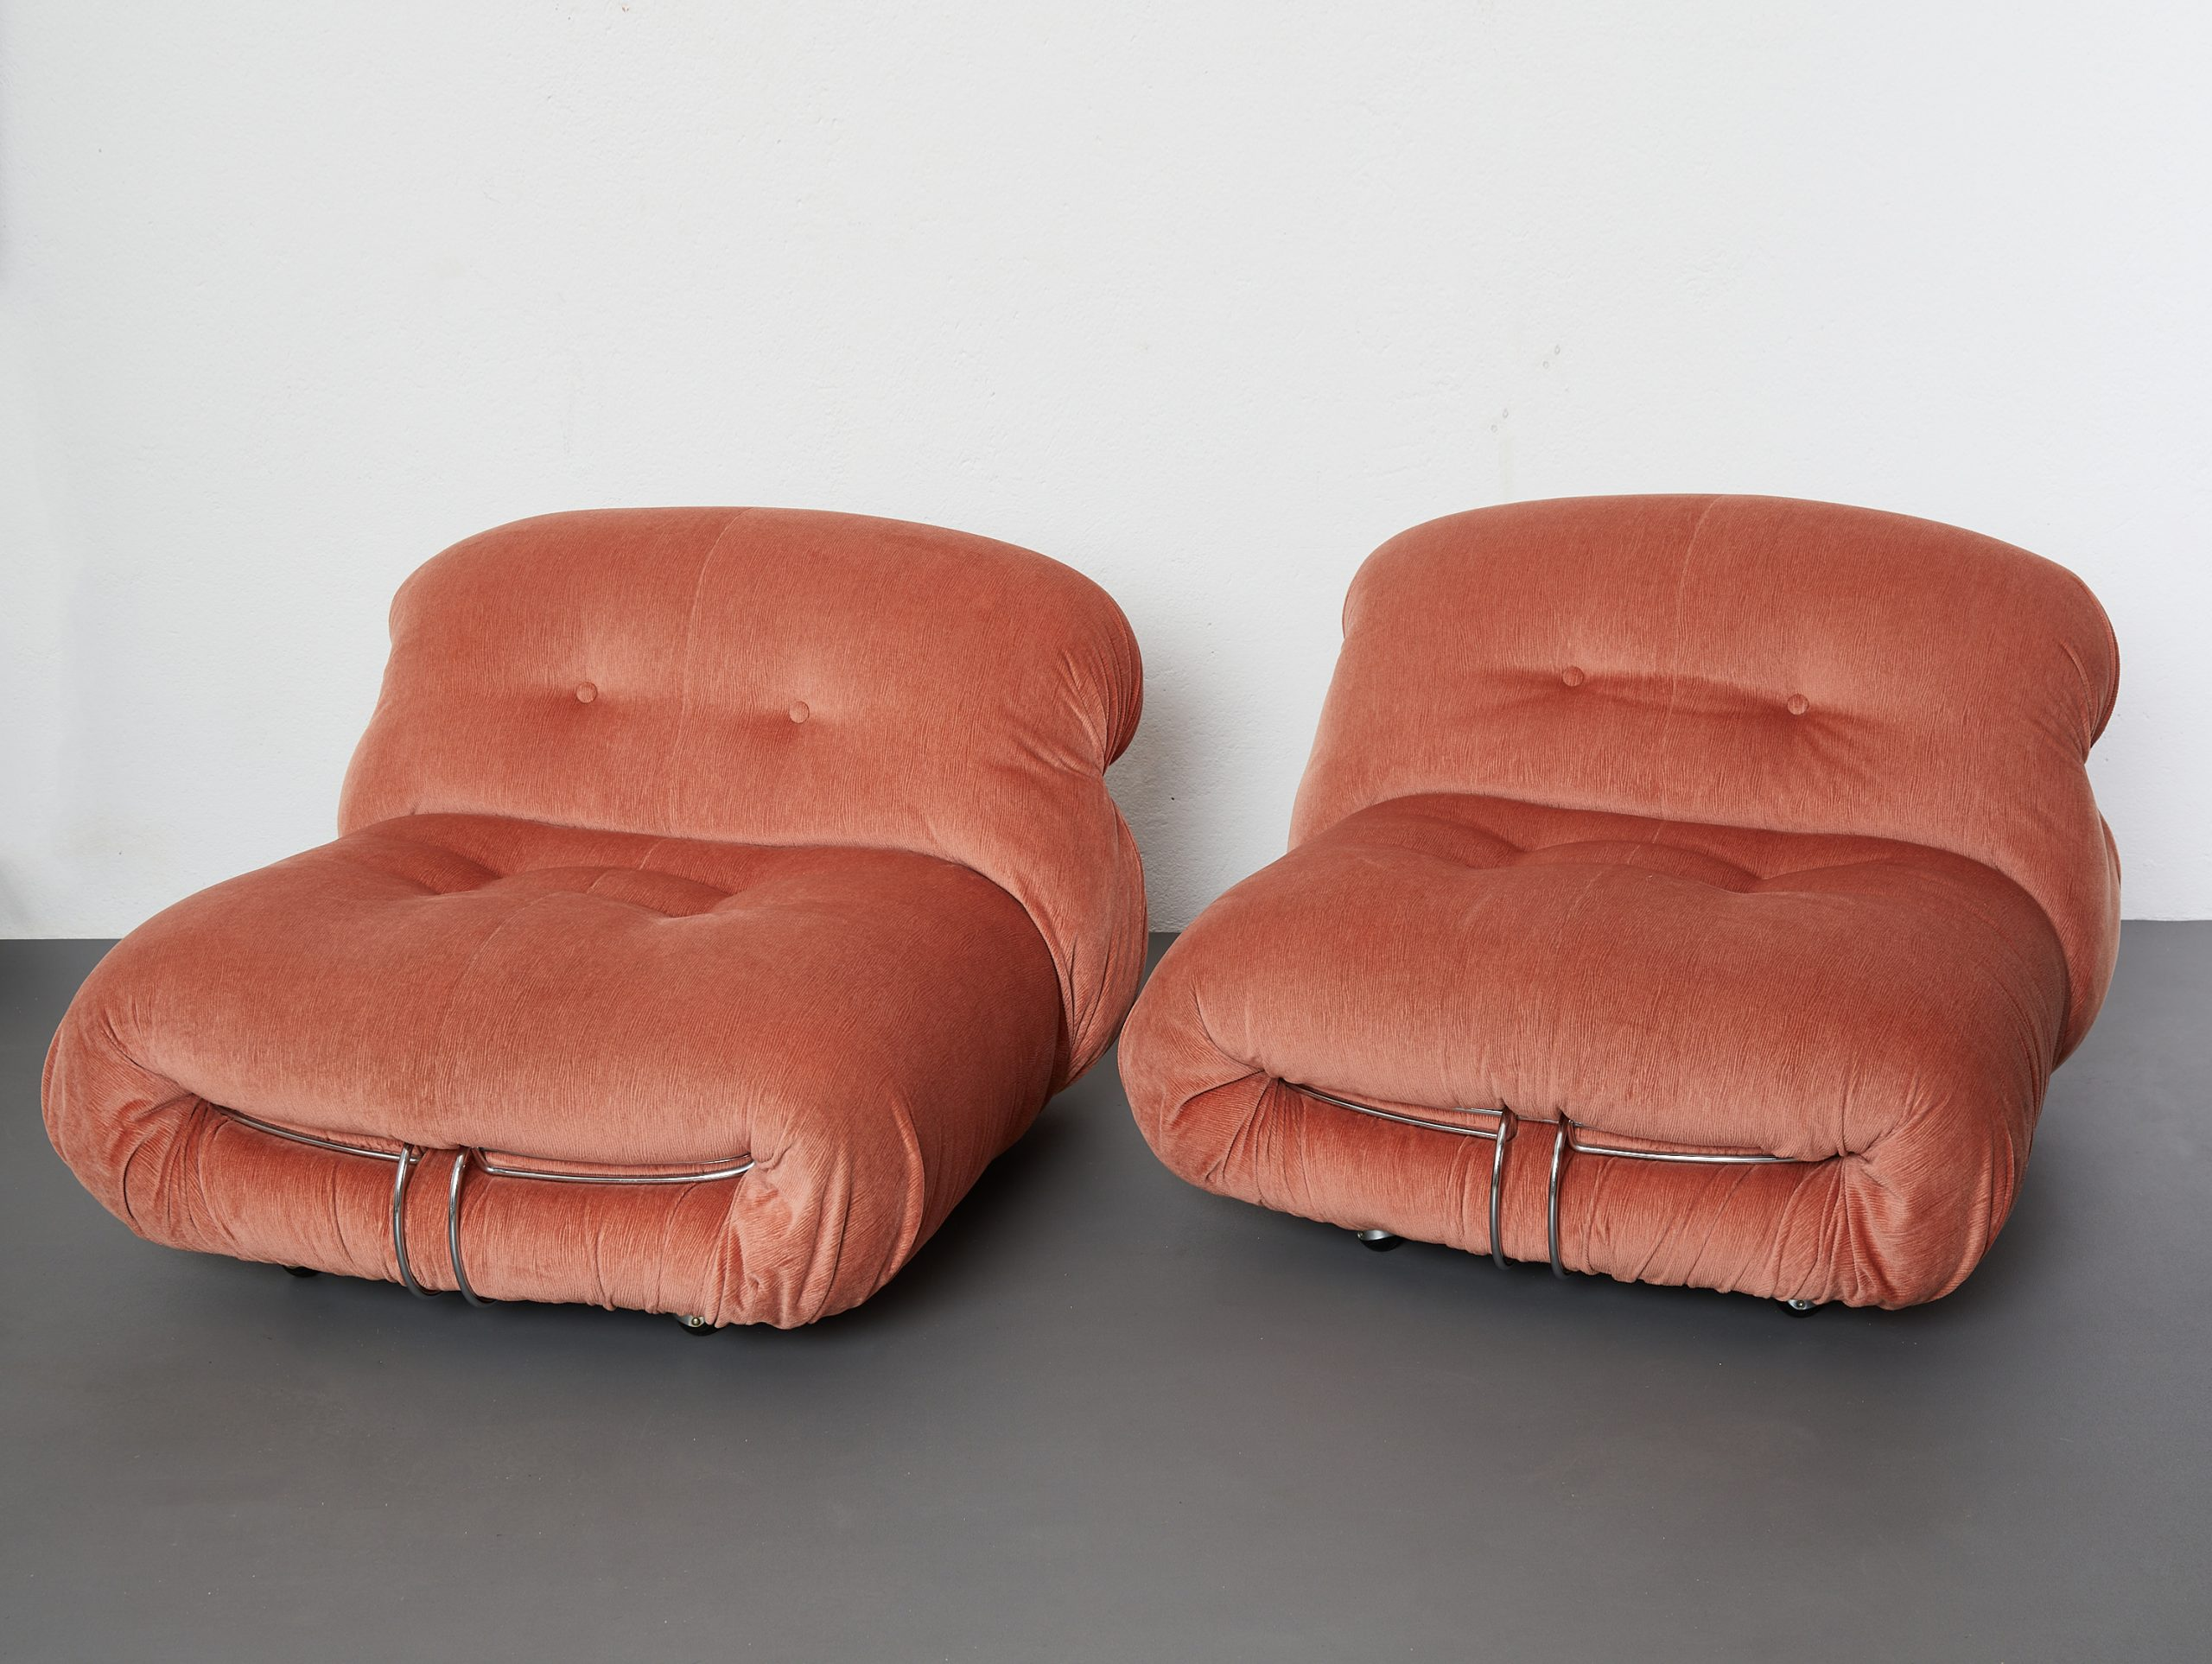 pair-of-soriana-lounge-chairs-by-afra-and-tobia-scarpa-cassina-1970-image-01